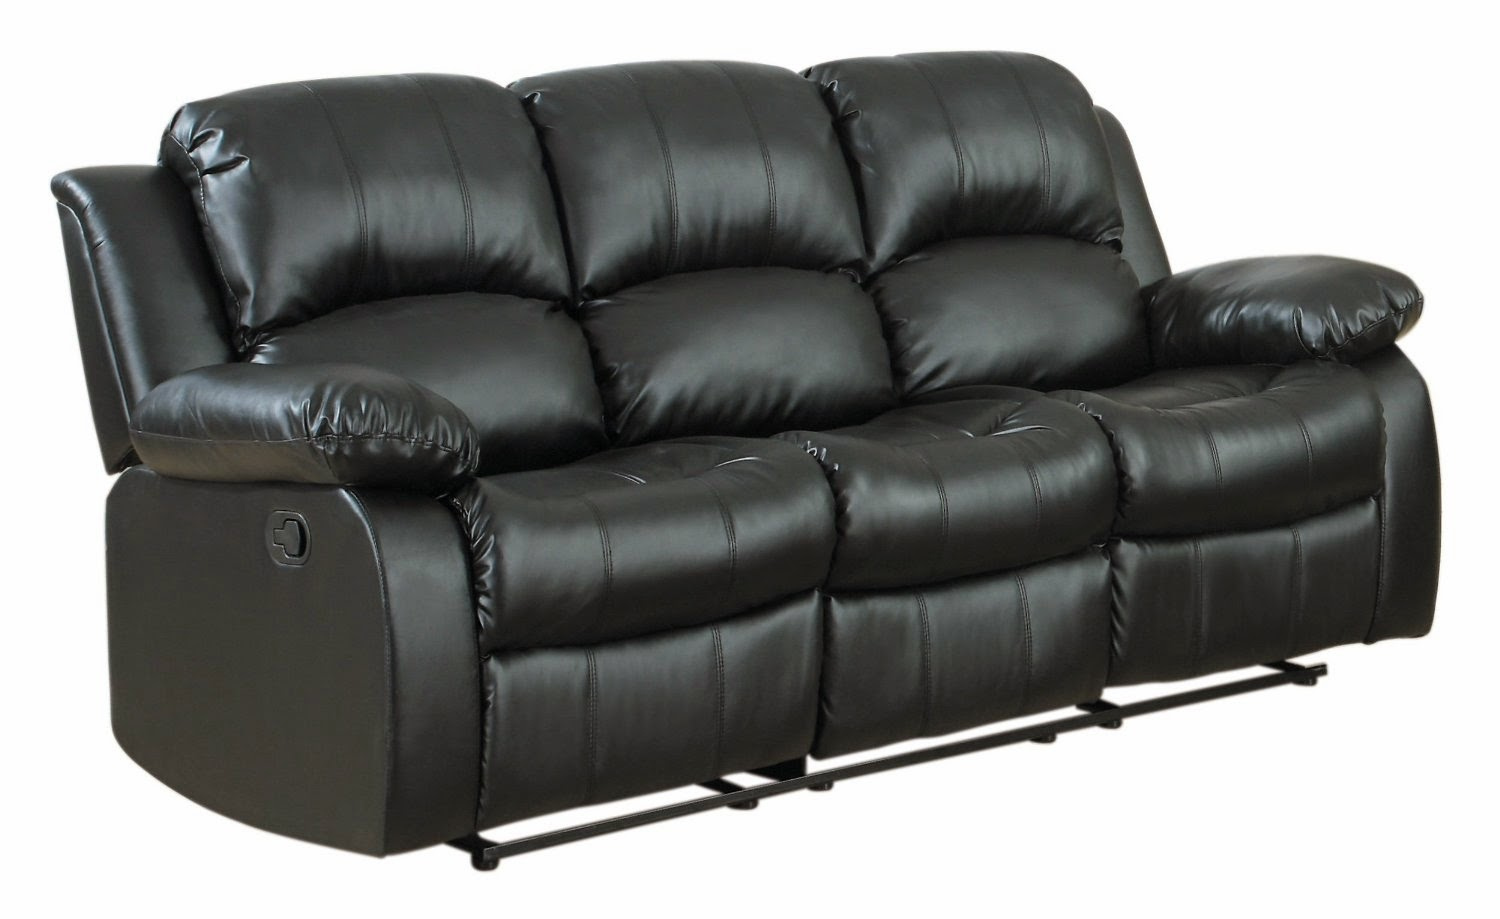 discounted leather sofas l sofa bed best recliner brand recommendation wanted cheap